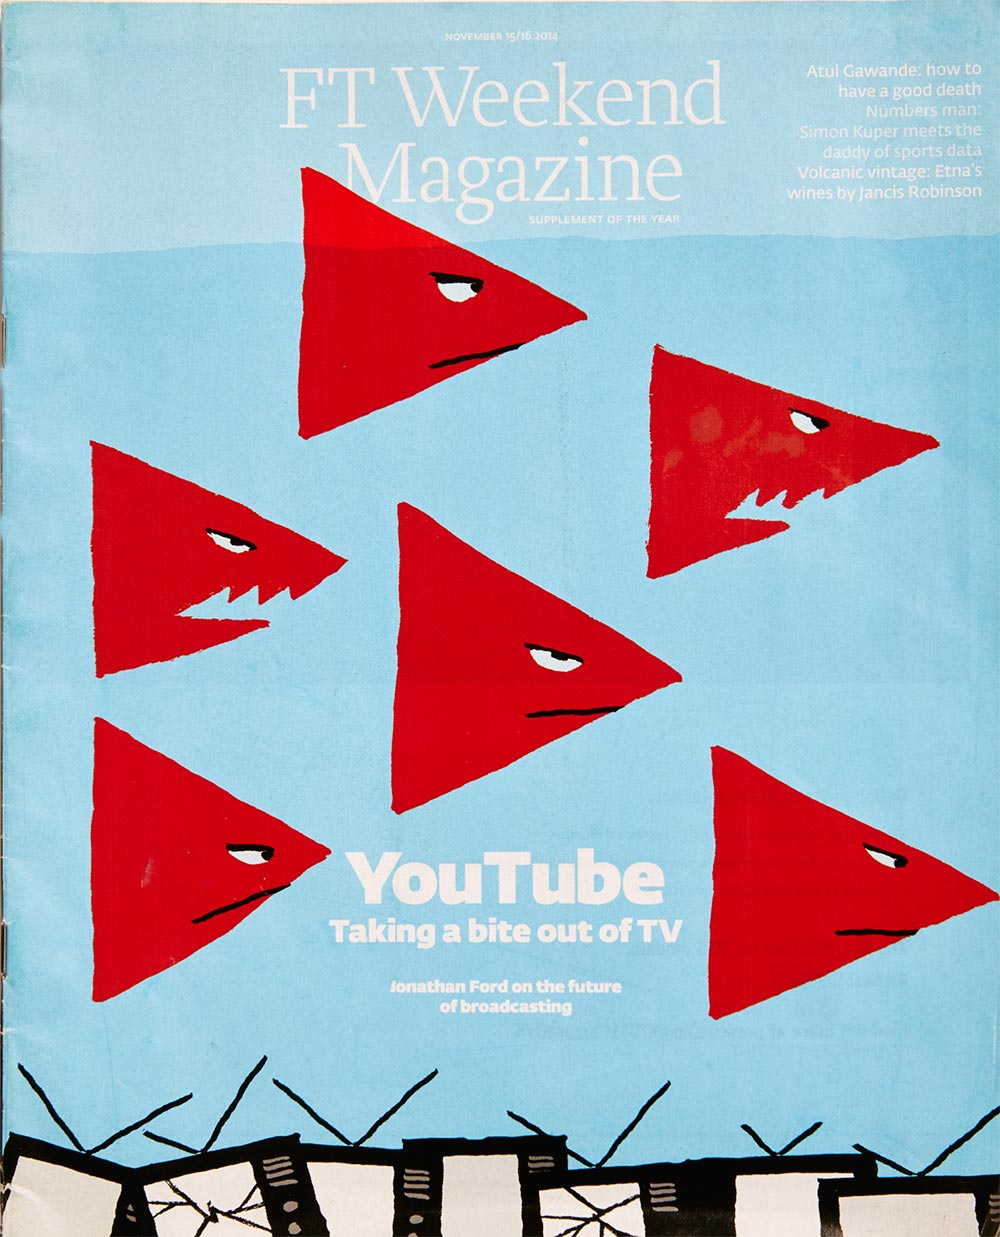 14-11-Financial-Times-UK-Magazine-cover-1.jpg